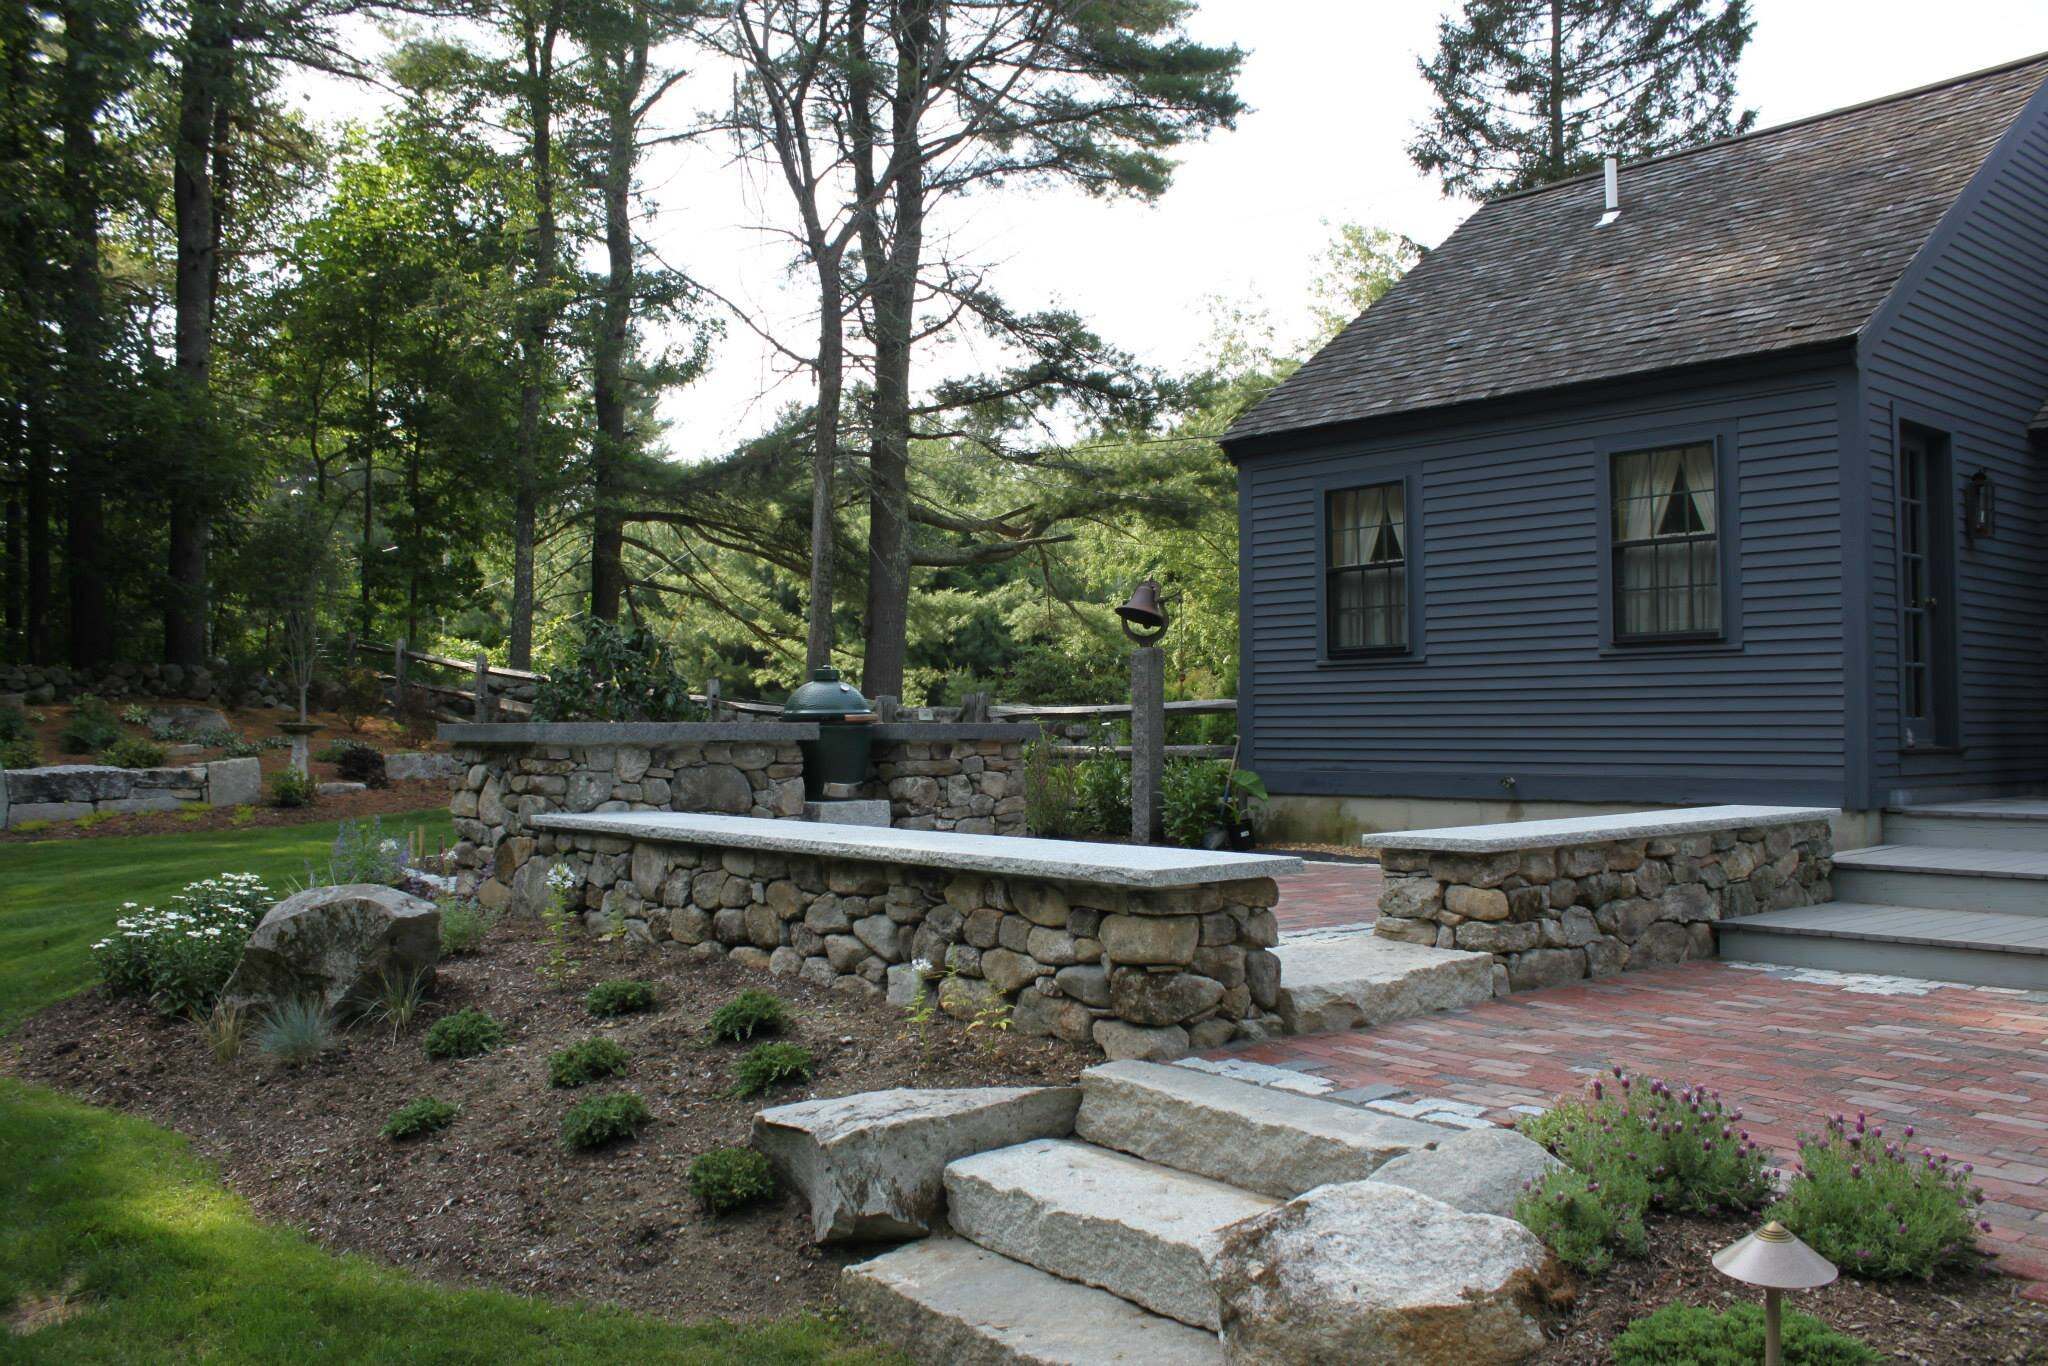 4 reasons why you need a professional for tree stump removal in Hollis, NH